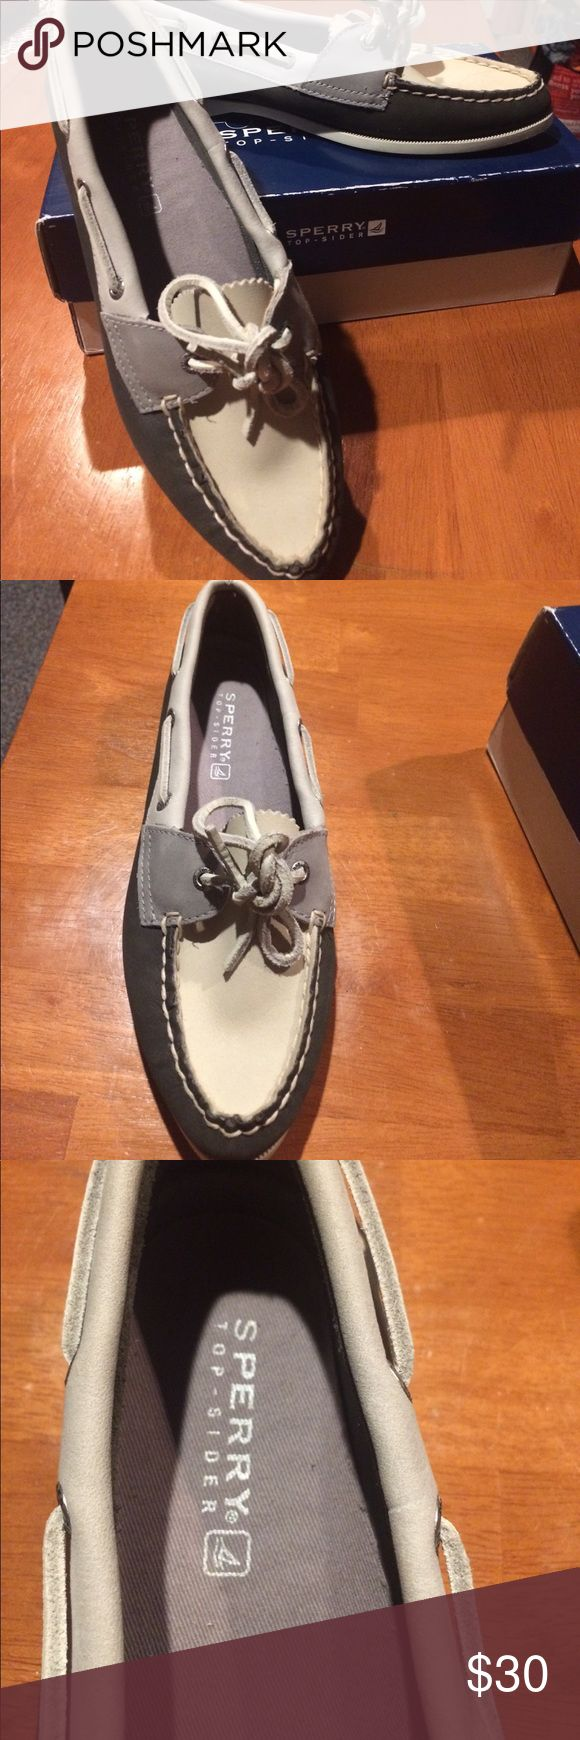 Sperry Top Sider Women's Boat Shoes Brand New in Box! Never worn! Women's Size 6 Sperry Top Siders Sperry Top-Sider Shoes Flats & Loafers